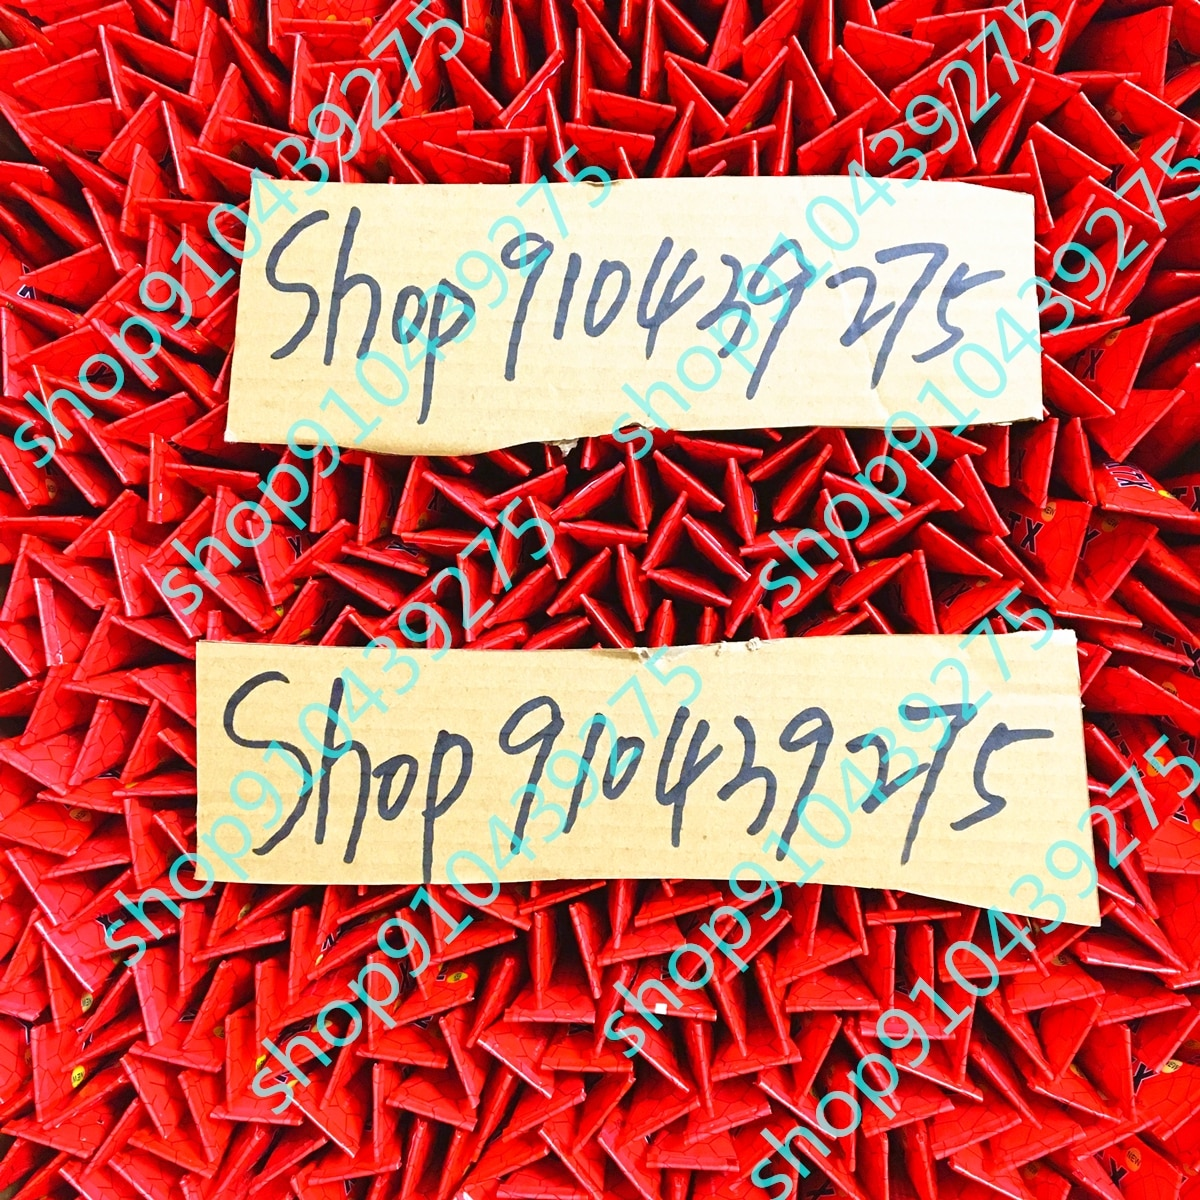 10PCS 10g 40% numb anestesia microblading tktx red 40% Tattoo machine kit sticker ink supplies needles pen gun removal printer